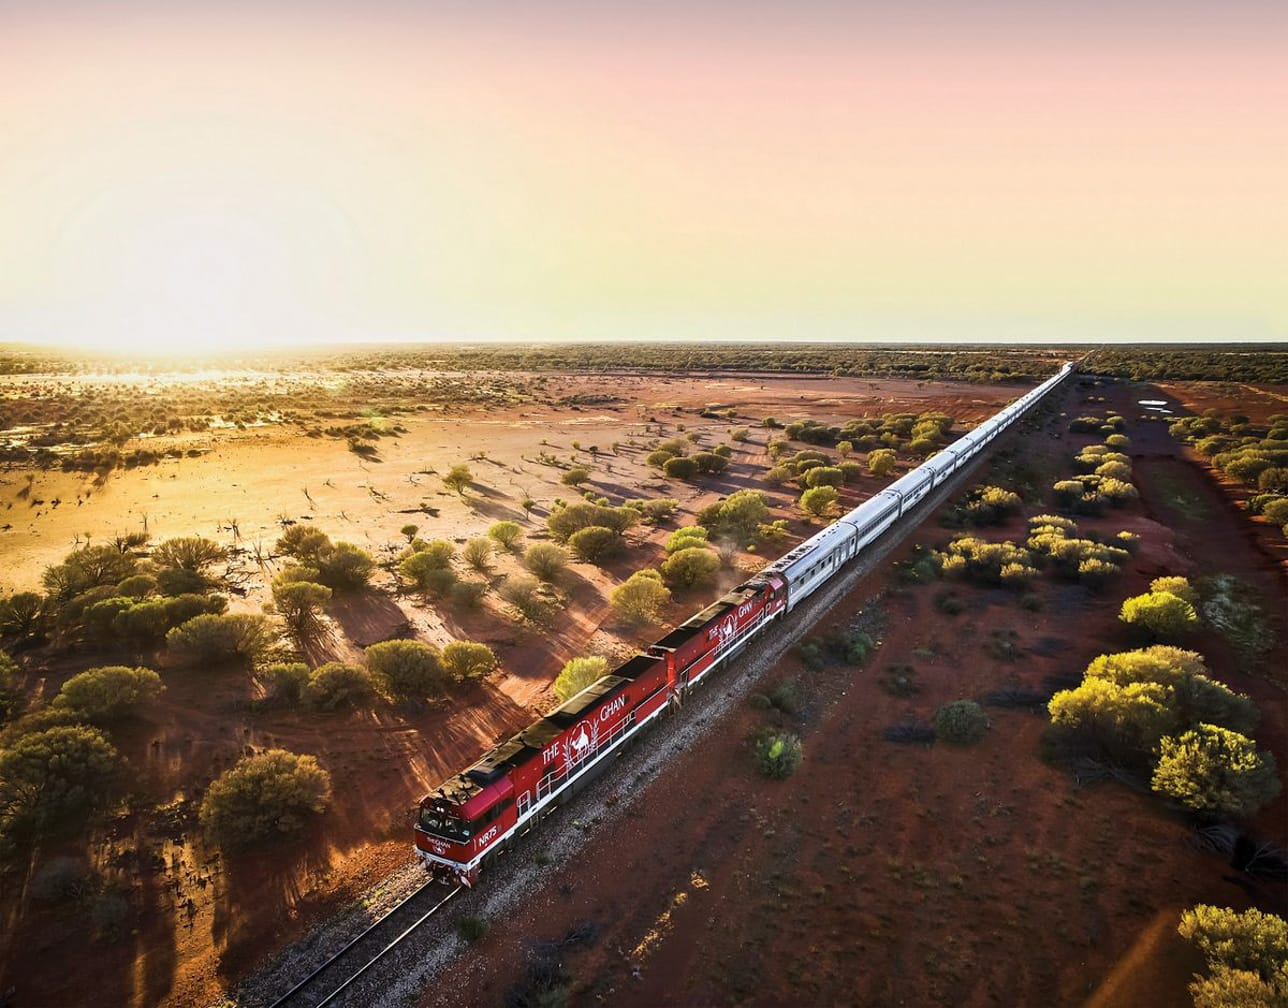 The Ghan train at sunset